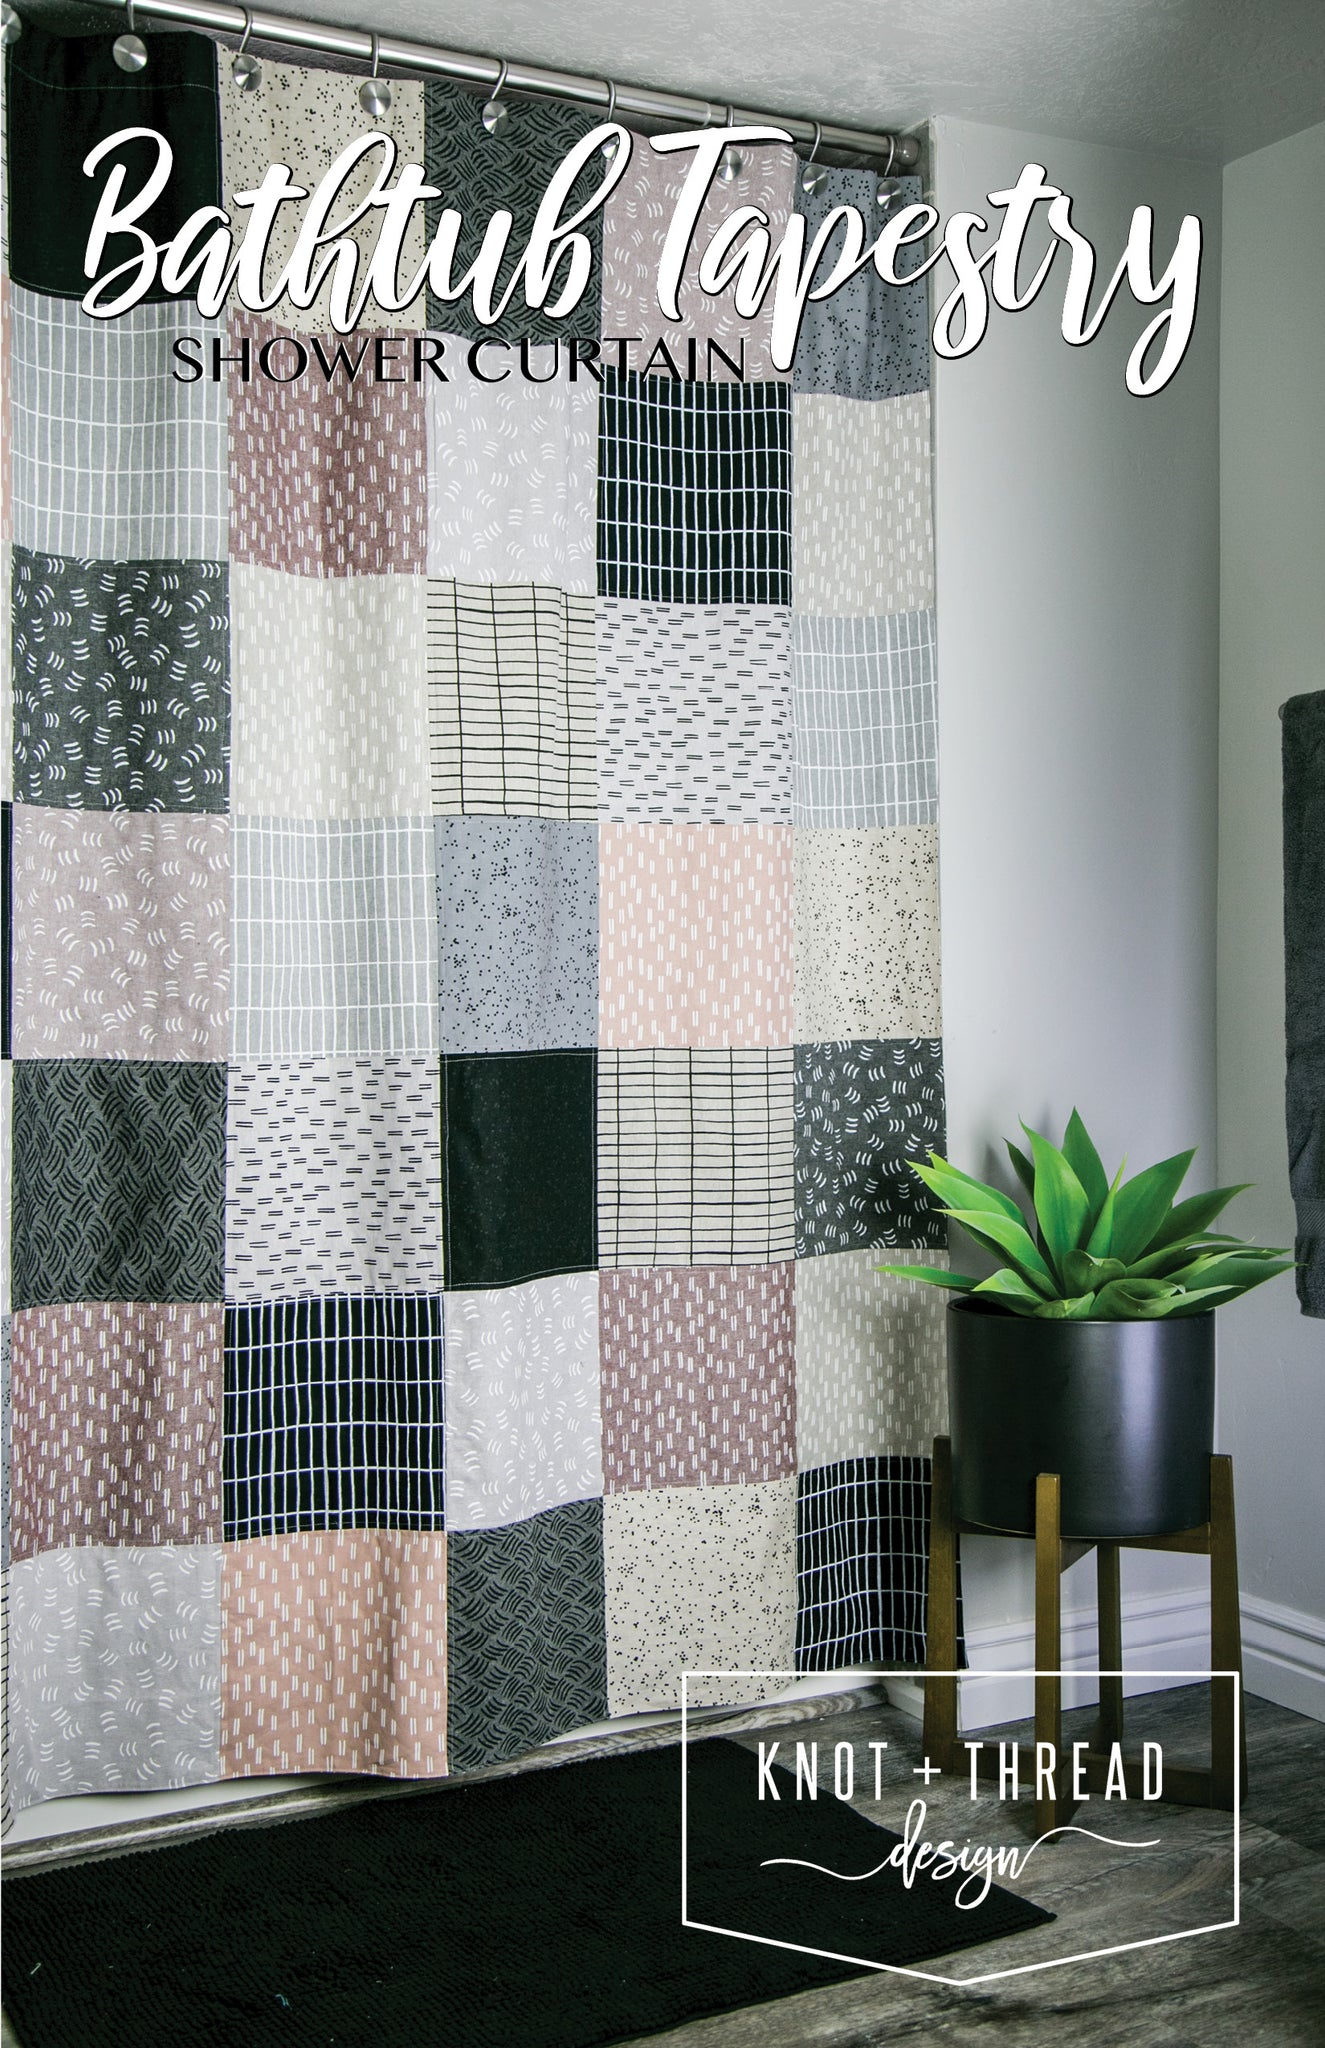 Bathtub Tapestry Shower Curtain (Paper Pattern)